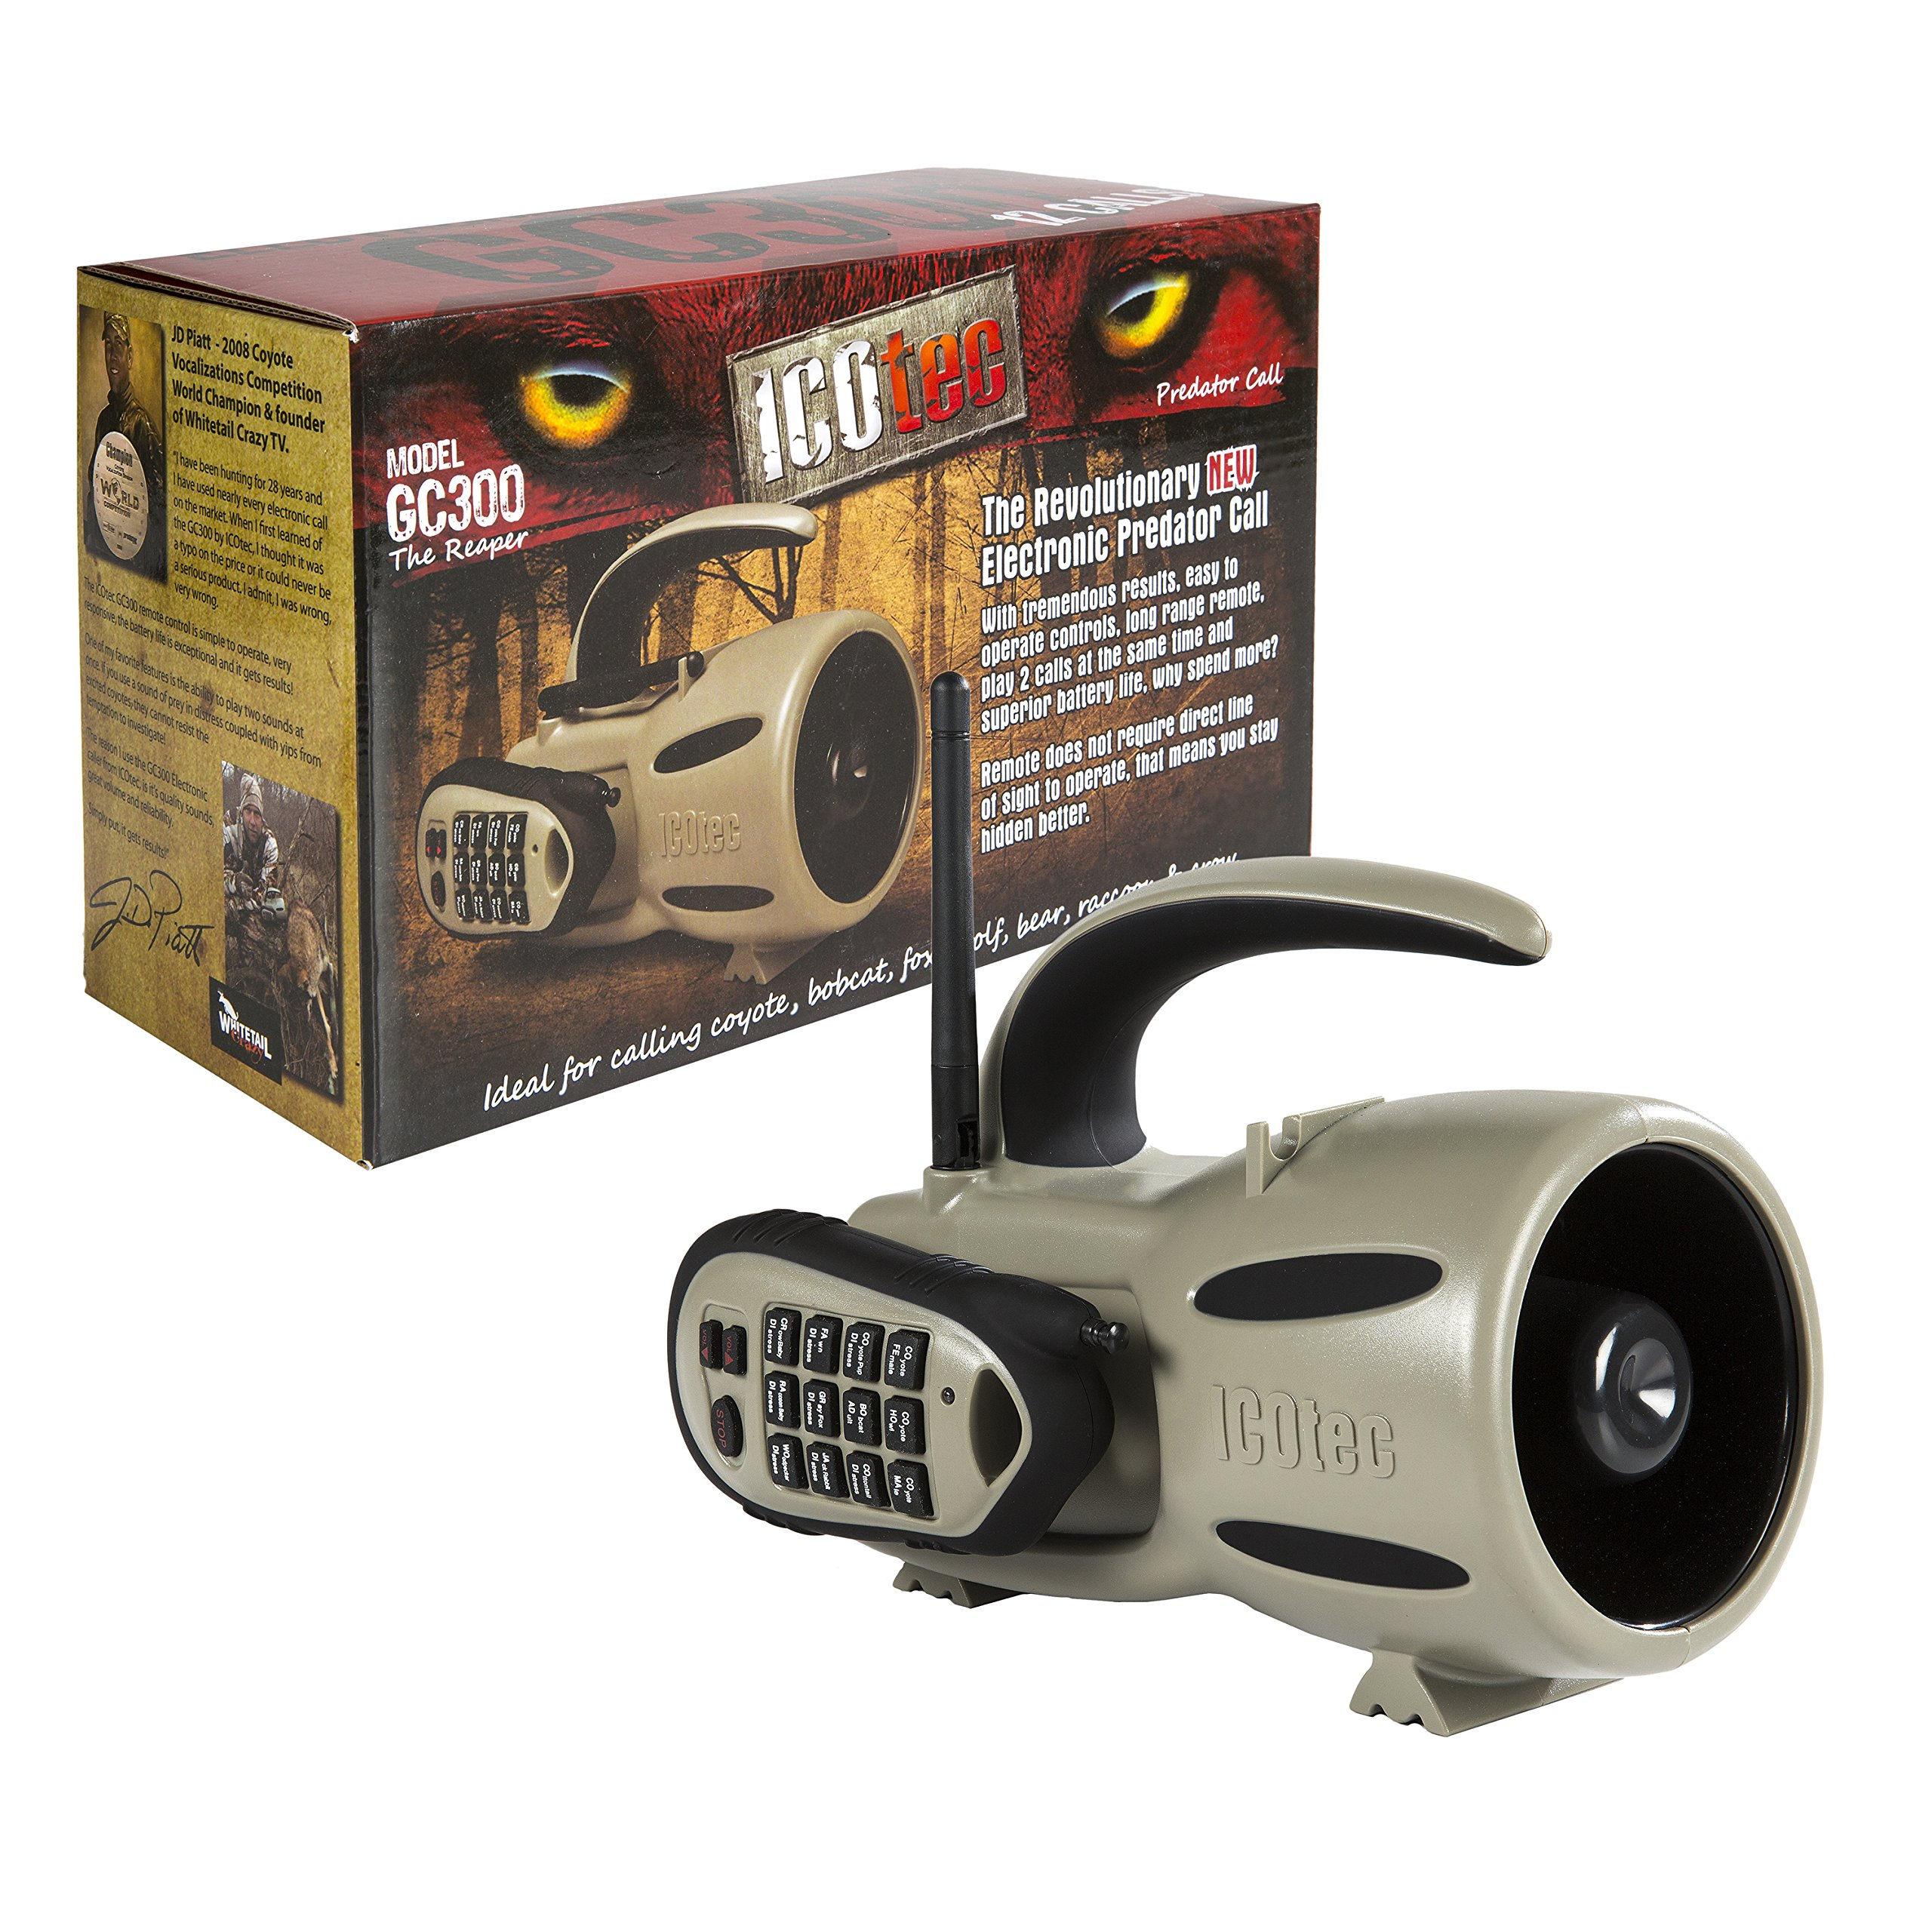 Icotec GC300 - Call of the Wild Electronic Game Call